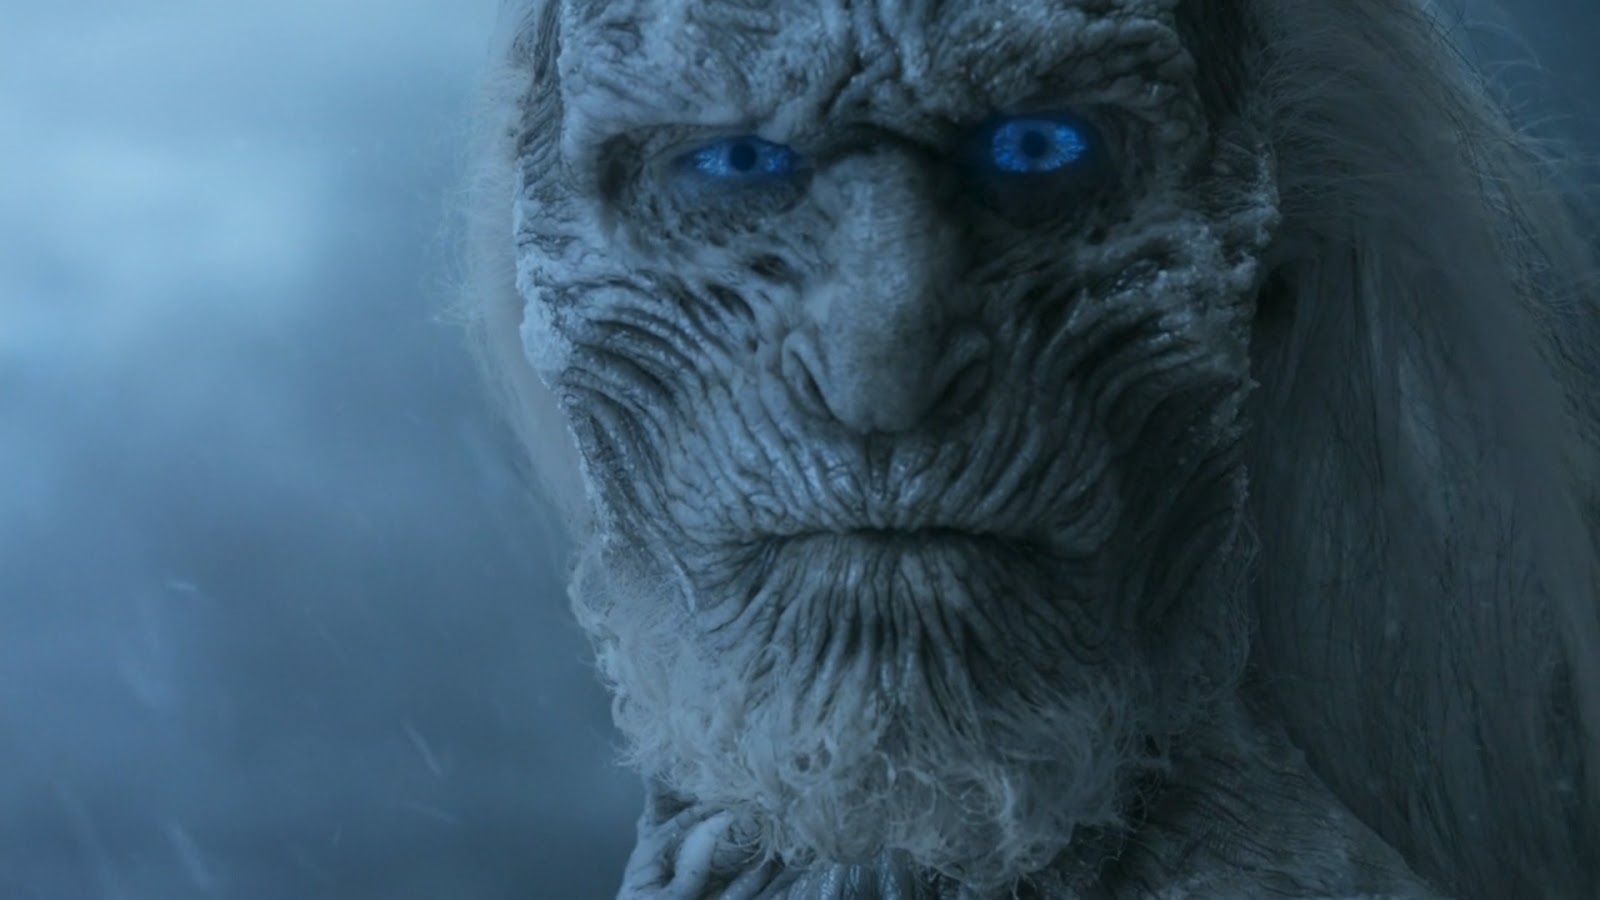 Monsters Beasts Database White walker Game of Thrones 1600x900